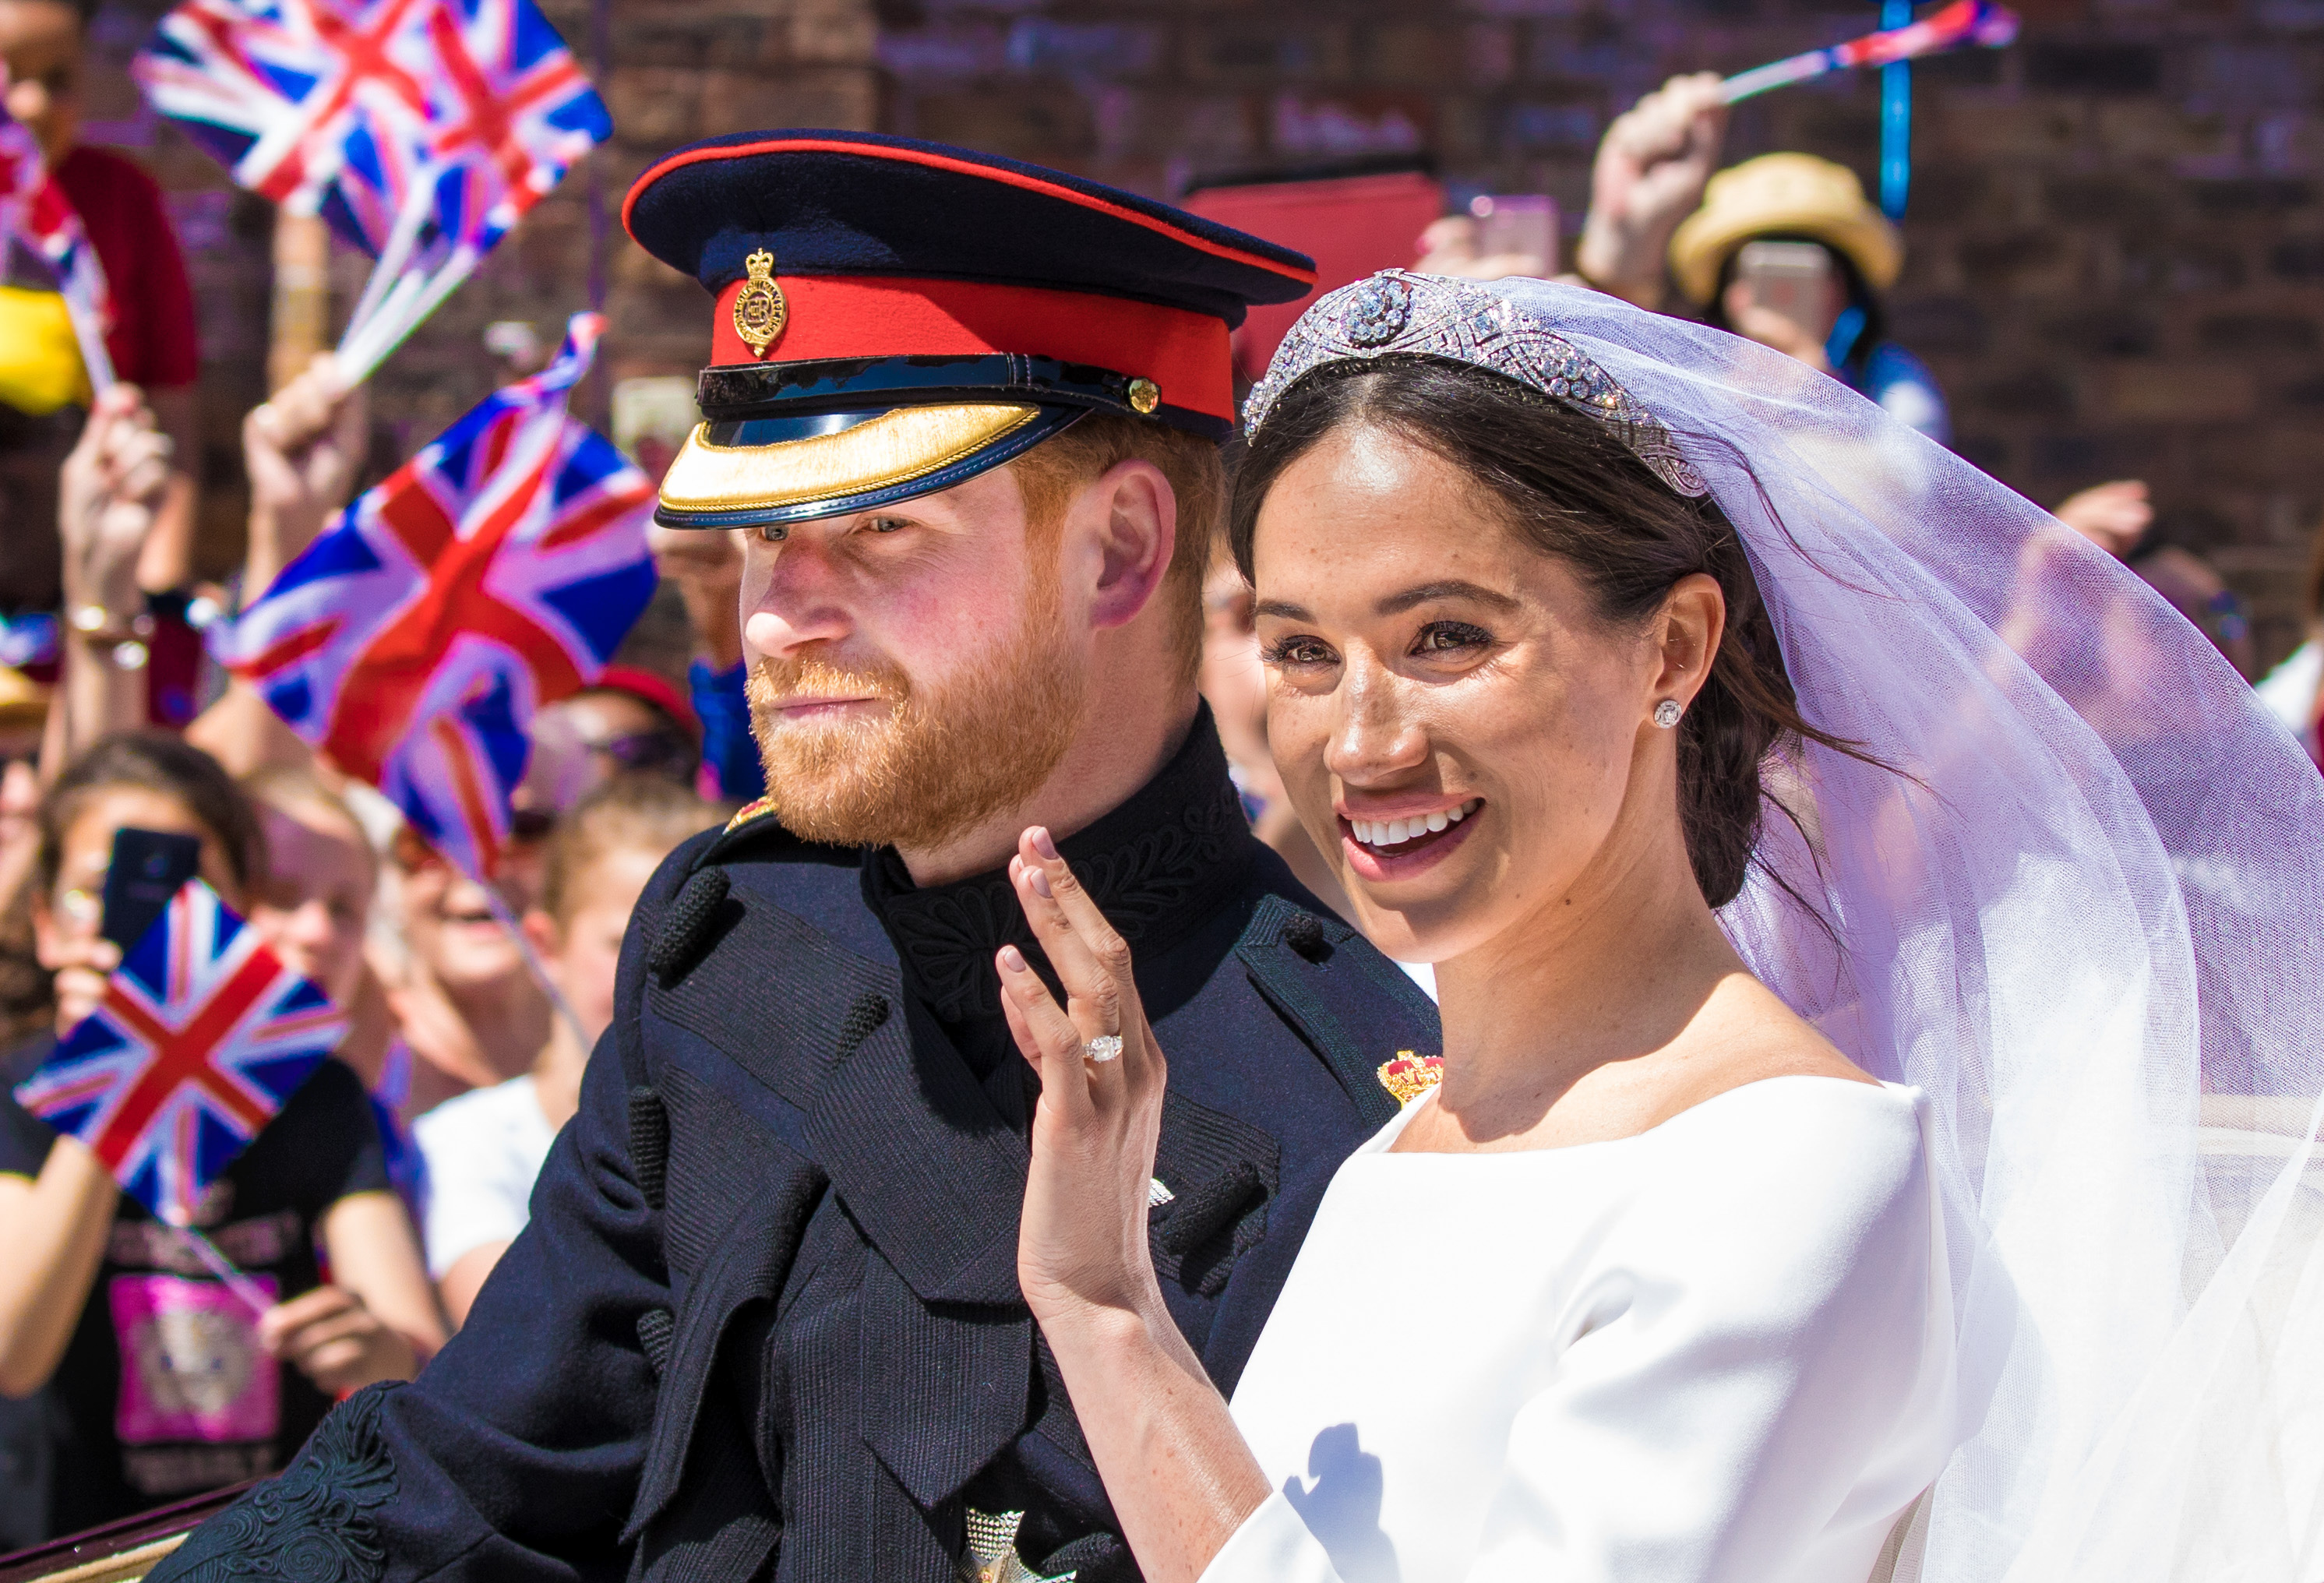 Harry and Meghan will not use HRH titles